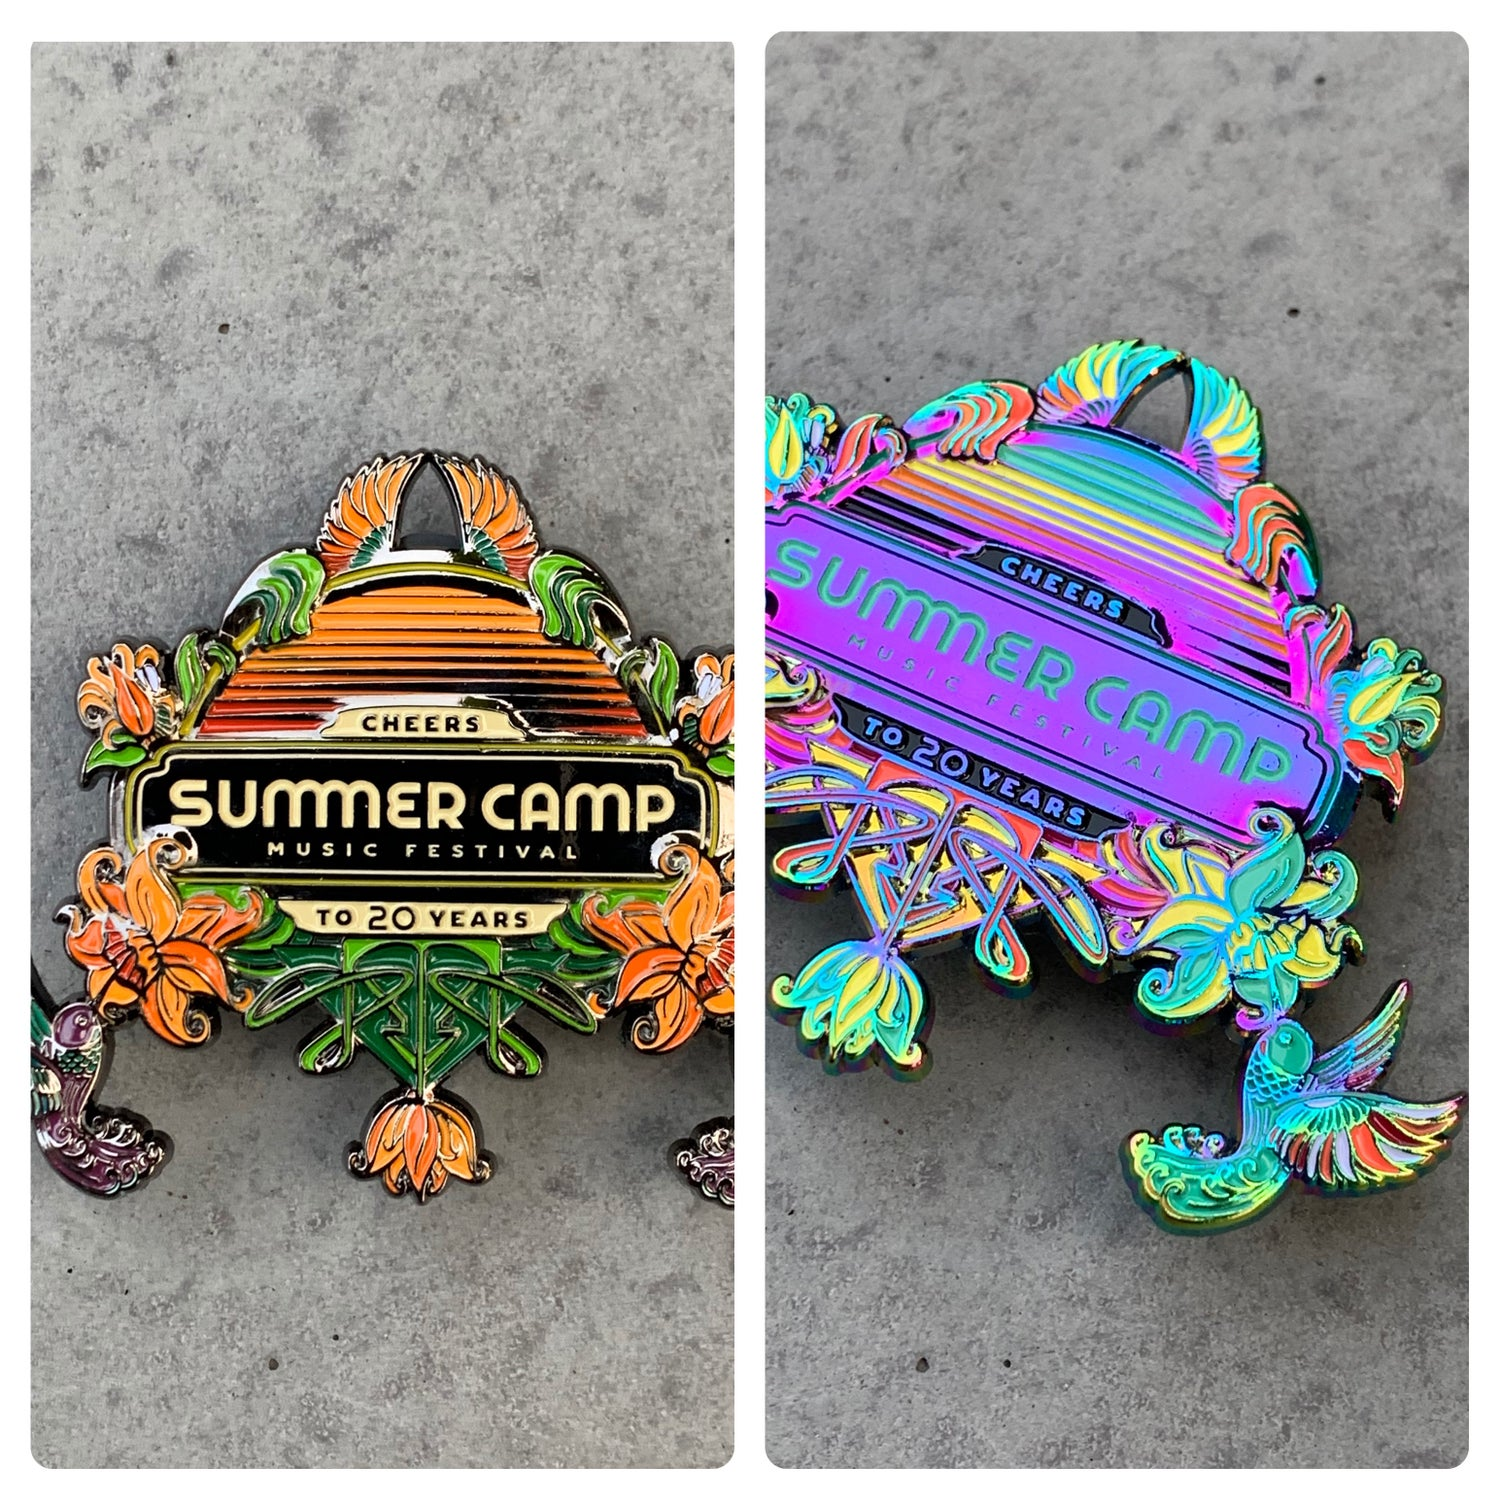 Completely Bonkers - Official Summer Camp 2021 Hummingbird Pin